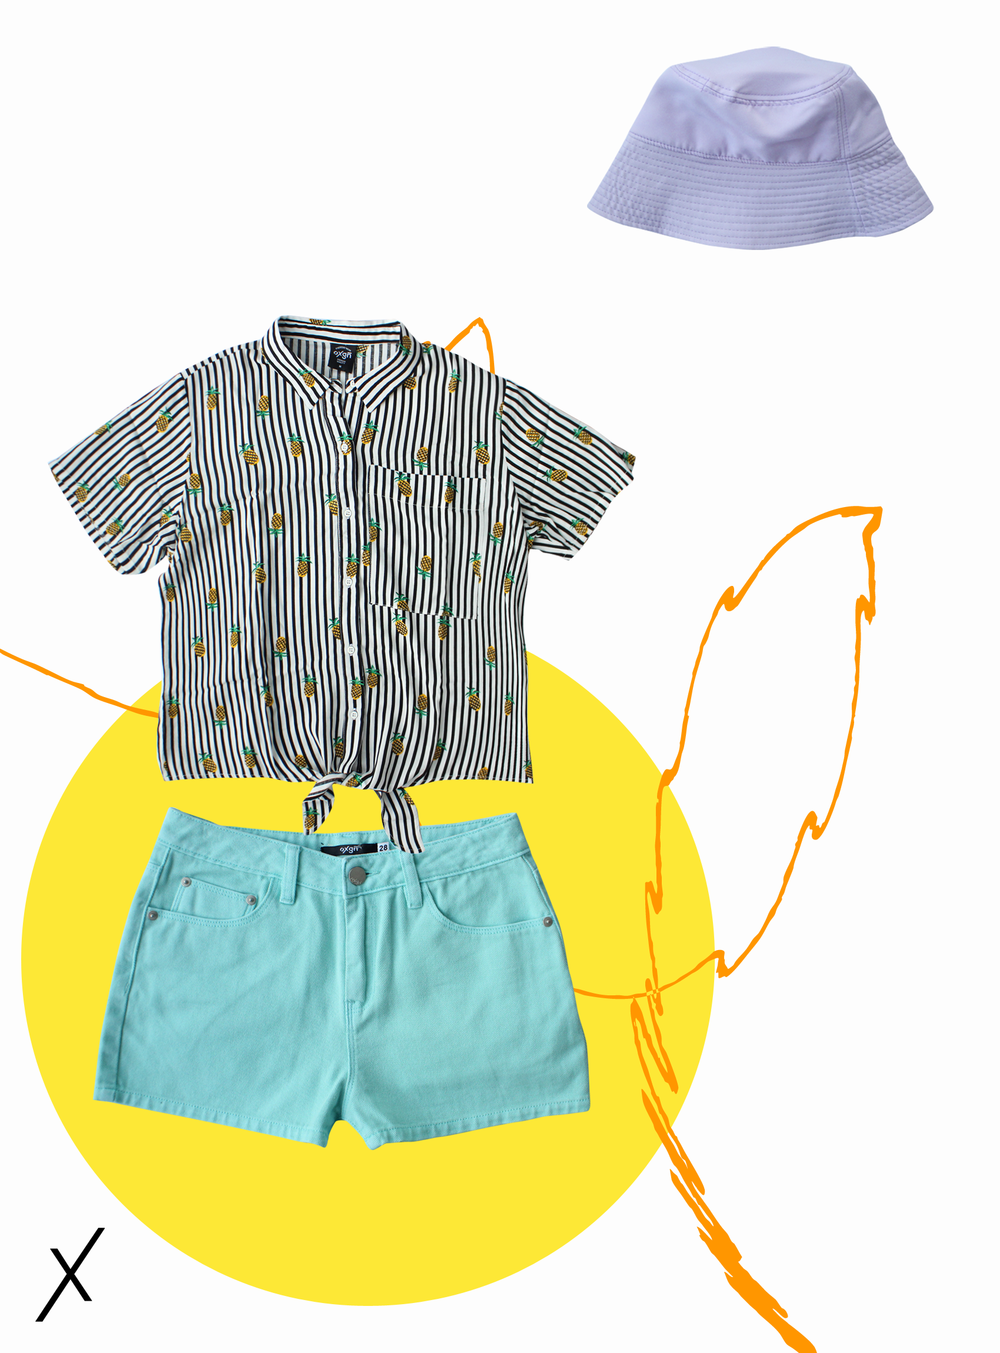 KNOTTED SHIRT (P799), OVERDYED SHORTS (P599)